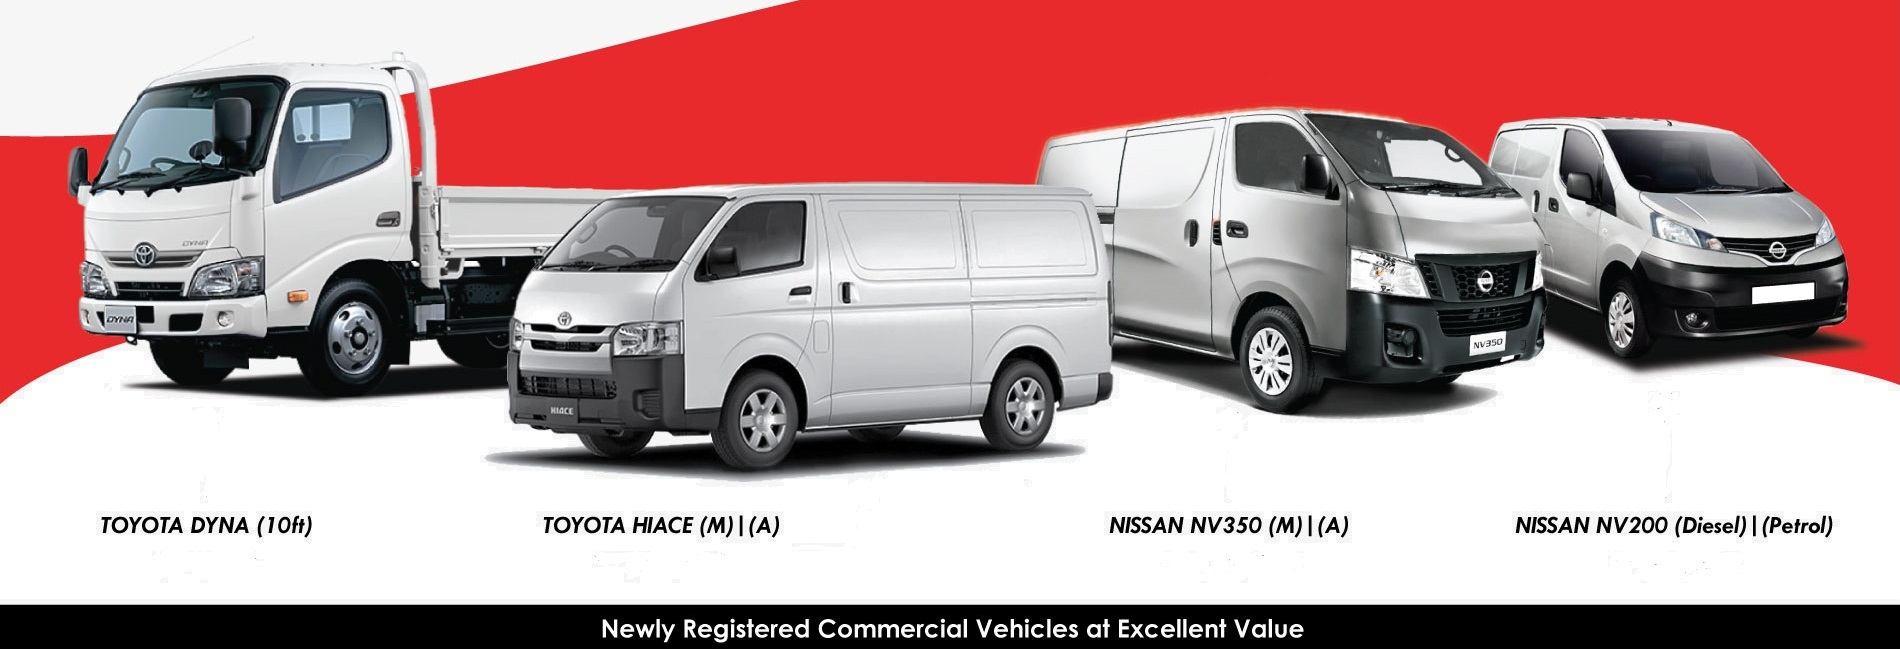 BRAND NEW COMMERCIAL VEHICLE GSS